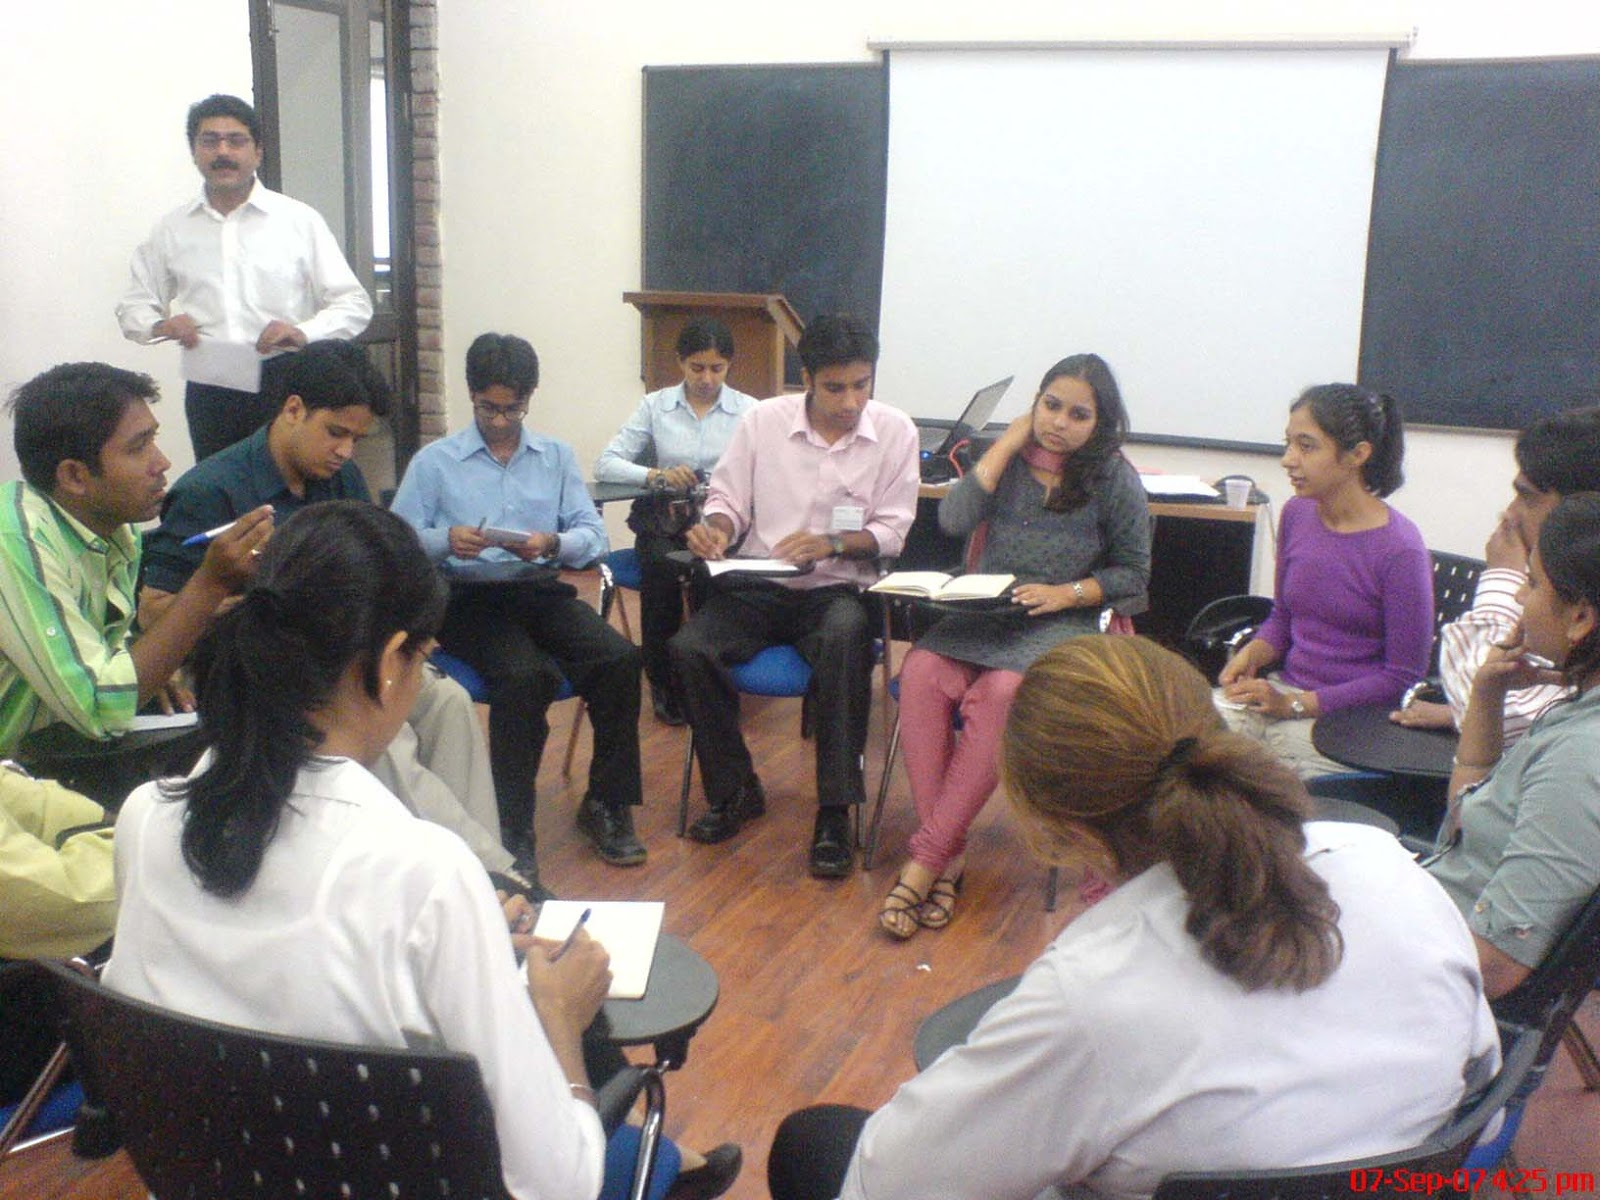 group discussion topics and answers